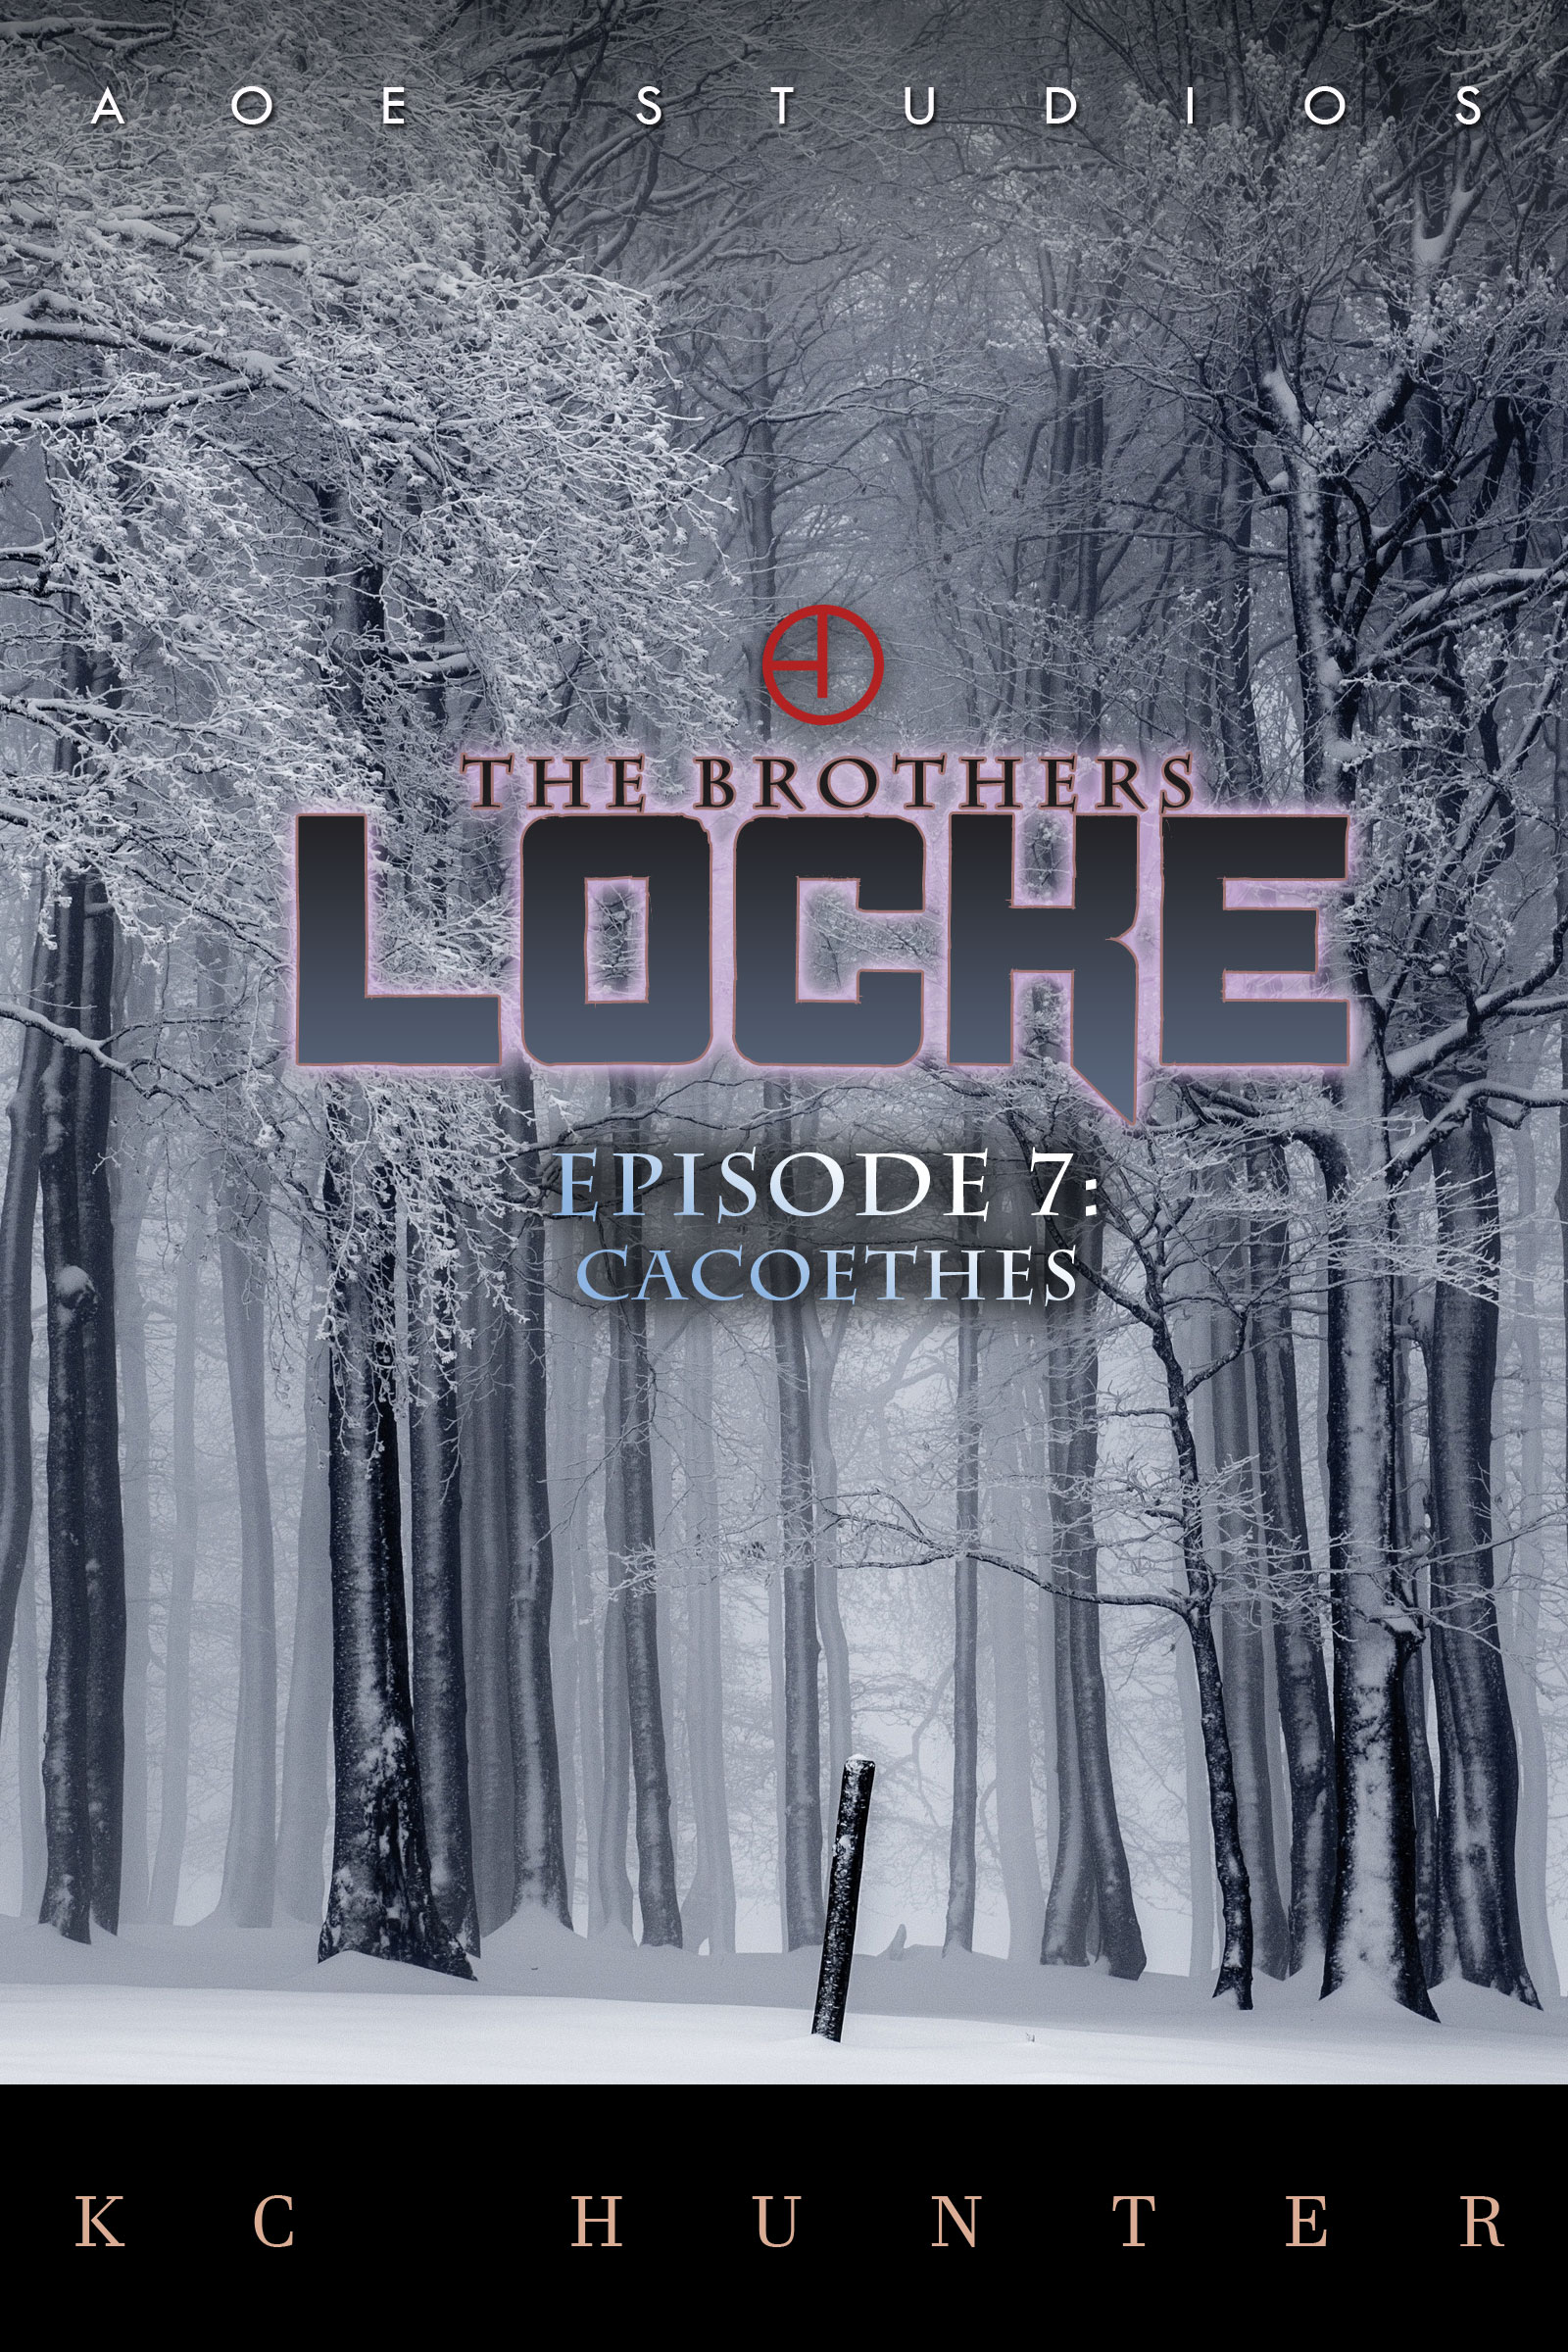 The Brothers Locke Episode 7 Book Cover Image